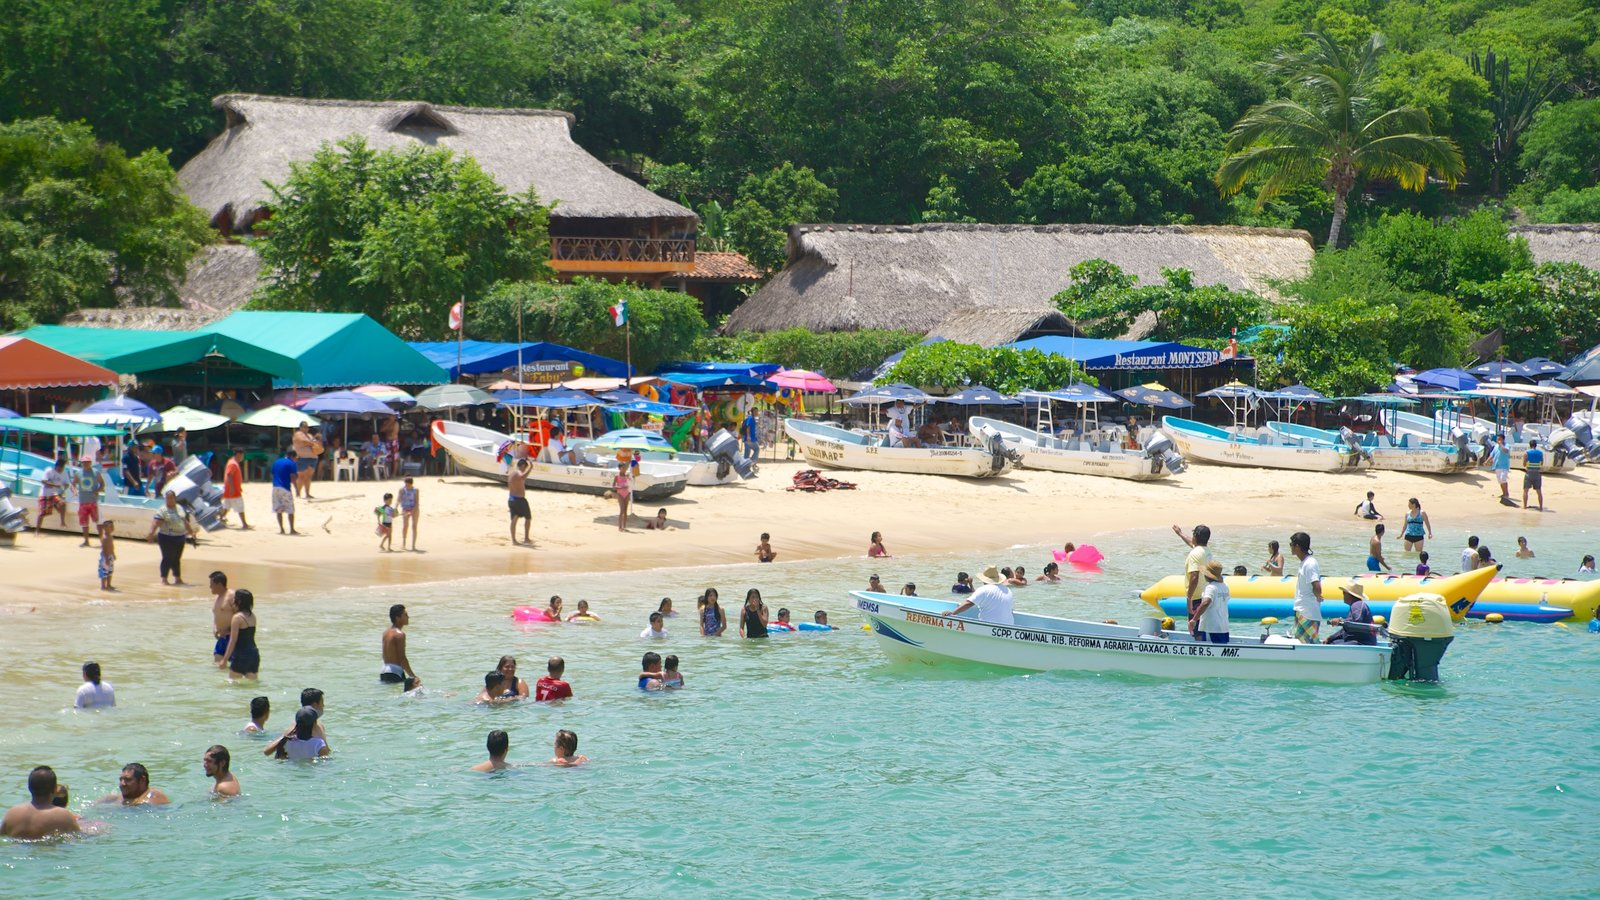 Puerto Angelito Beach which includes boating, a coastal town and swimming